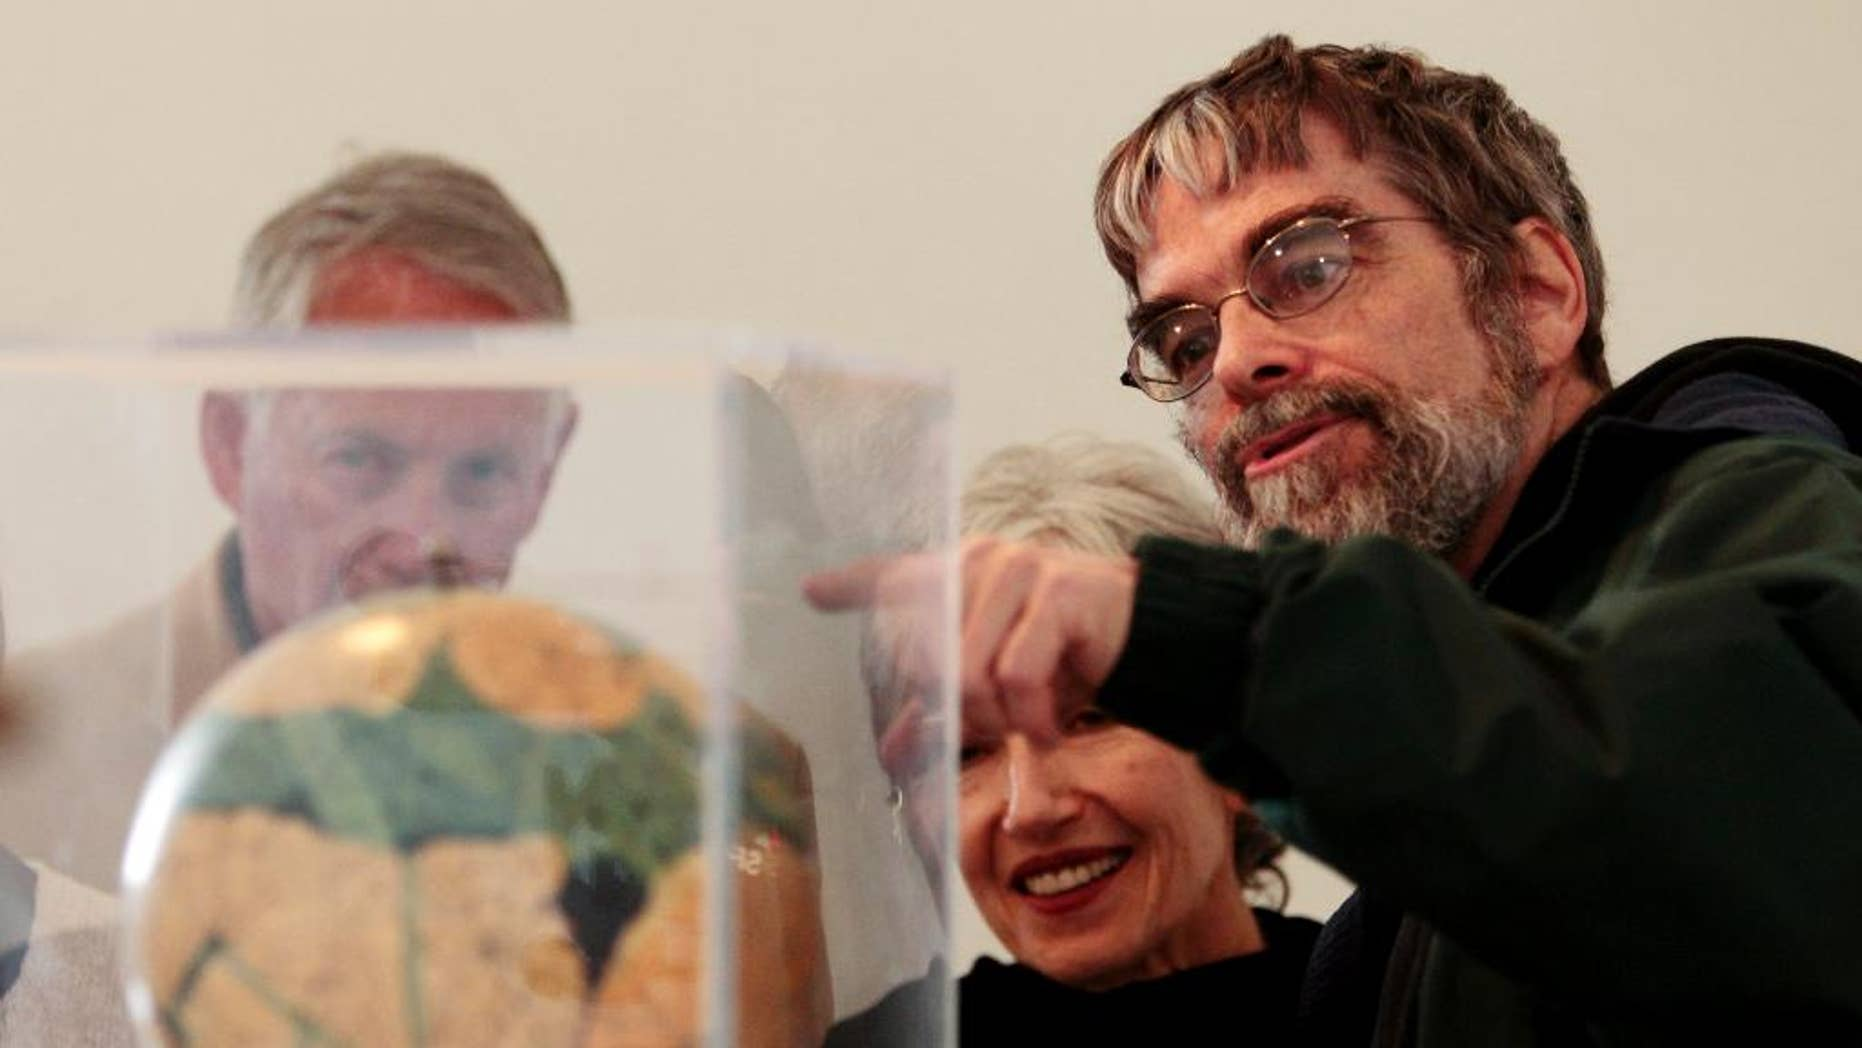 FILE - In this April 15, 2011 file photo, Brother Guy Consolmagno, a Jesuit astronomer at the Vatican's Observatory, right, shows to visitors the Globe of planet Mars from the collection of the Specola Vaticana. The Vatican Observatory has invited leading scientists and cosmologists to talk black holes, gravitational waves and space-time singularities as it honors Monsignor George Lemaire, a Jesuit cosmologist considered one of the fathers of the idea that the universe began with a gigantic explosion. (AP Photo/Gregorio Borgia)